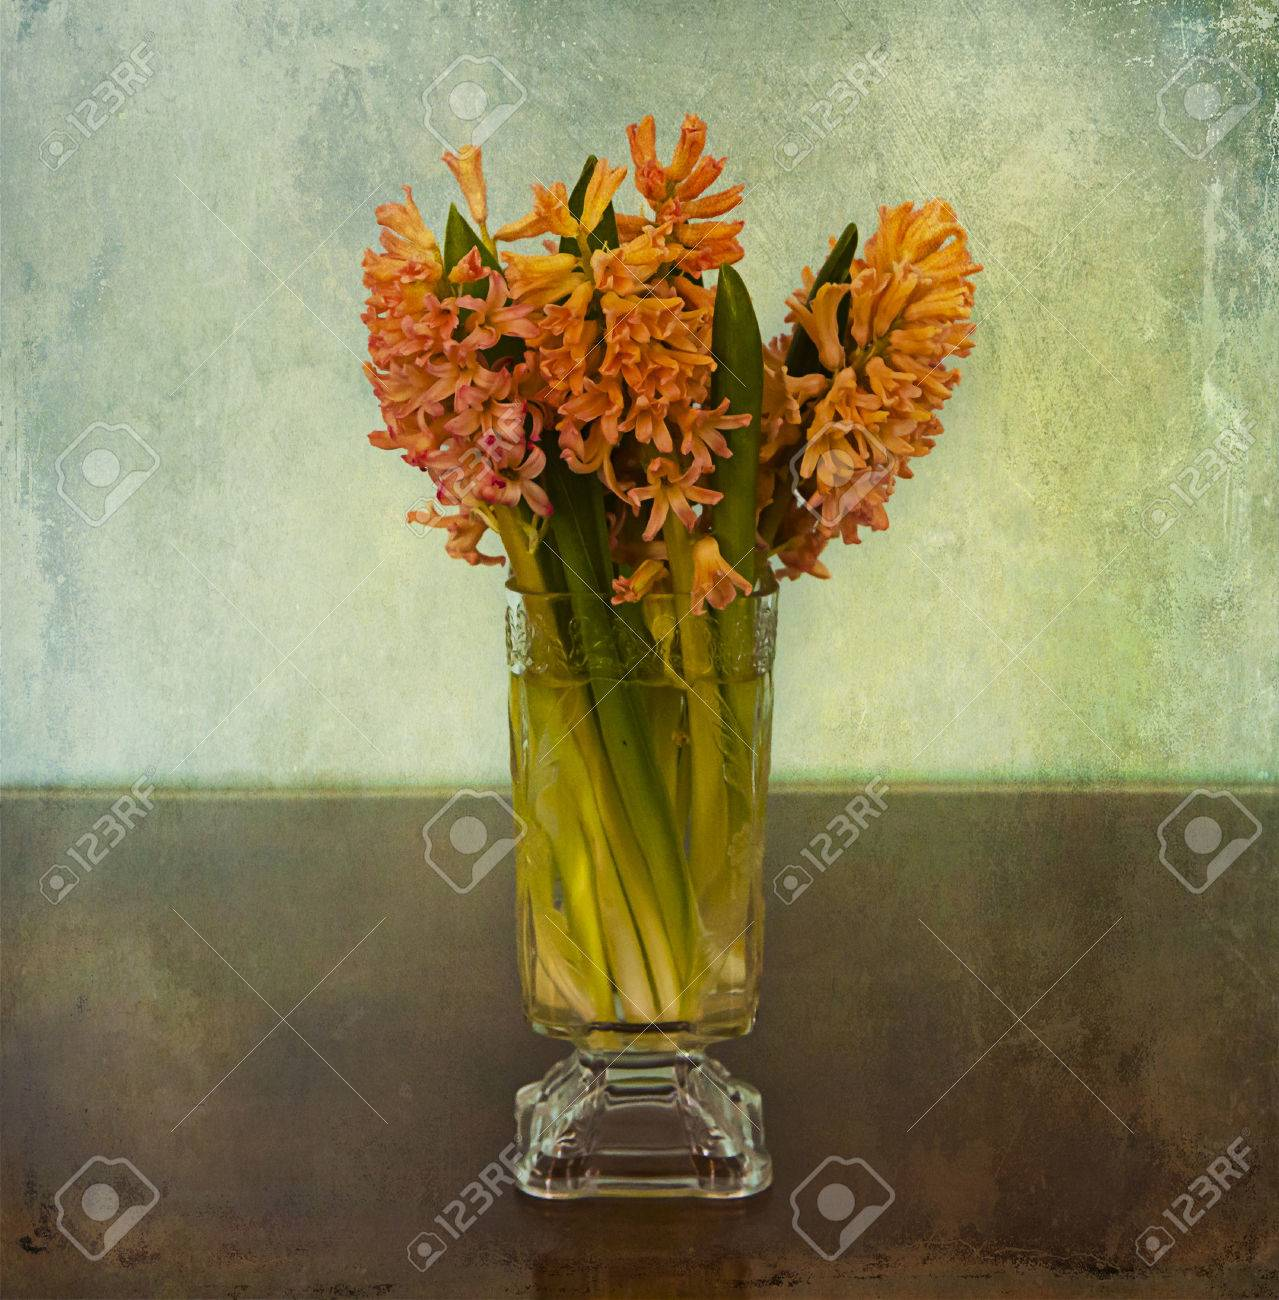 Elegant and minimalistic glass vase with a bouquet of pink  hyacinths on grunge textured background Stock Photo - 40938699